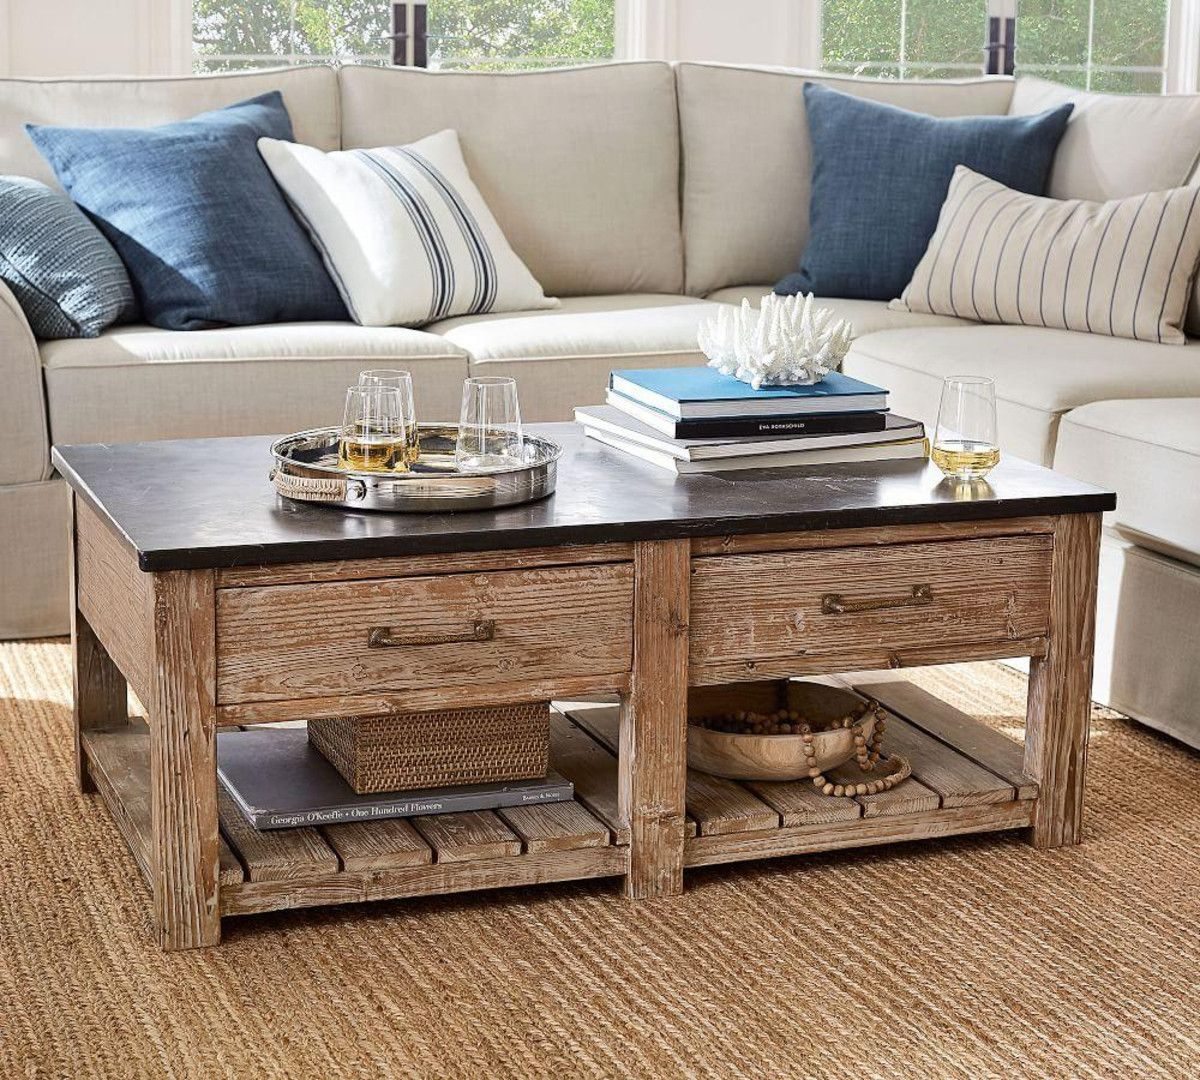 Pin by Pam Peterson on Tables Decorating coffee tables